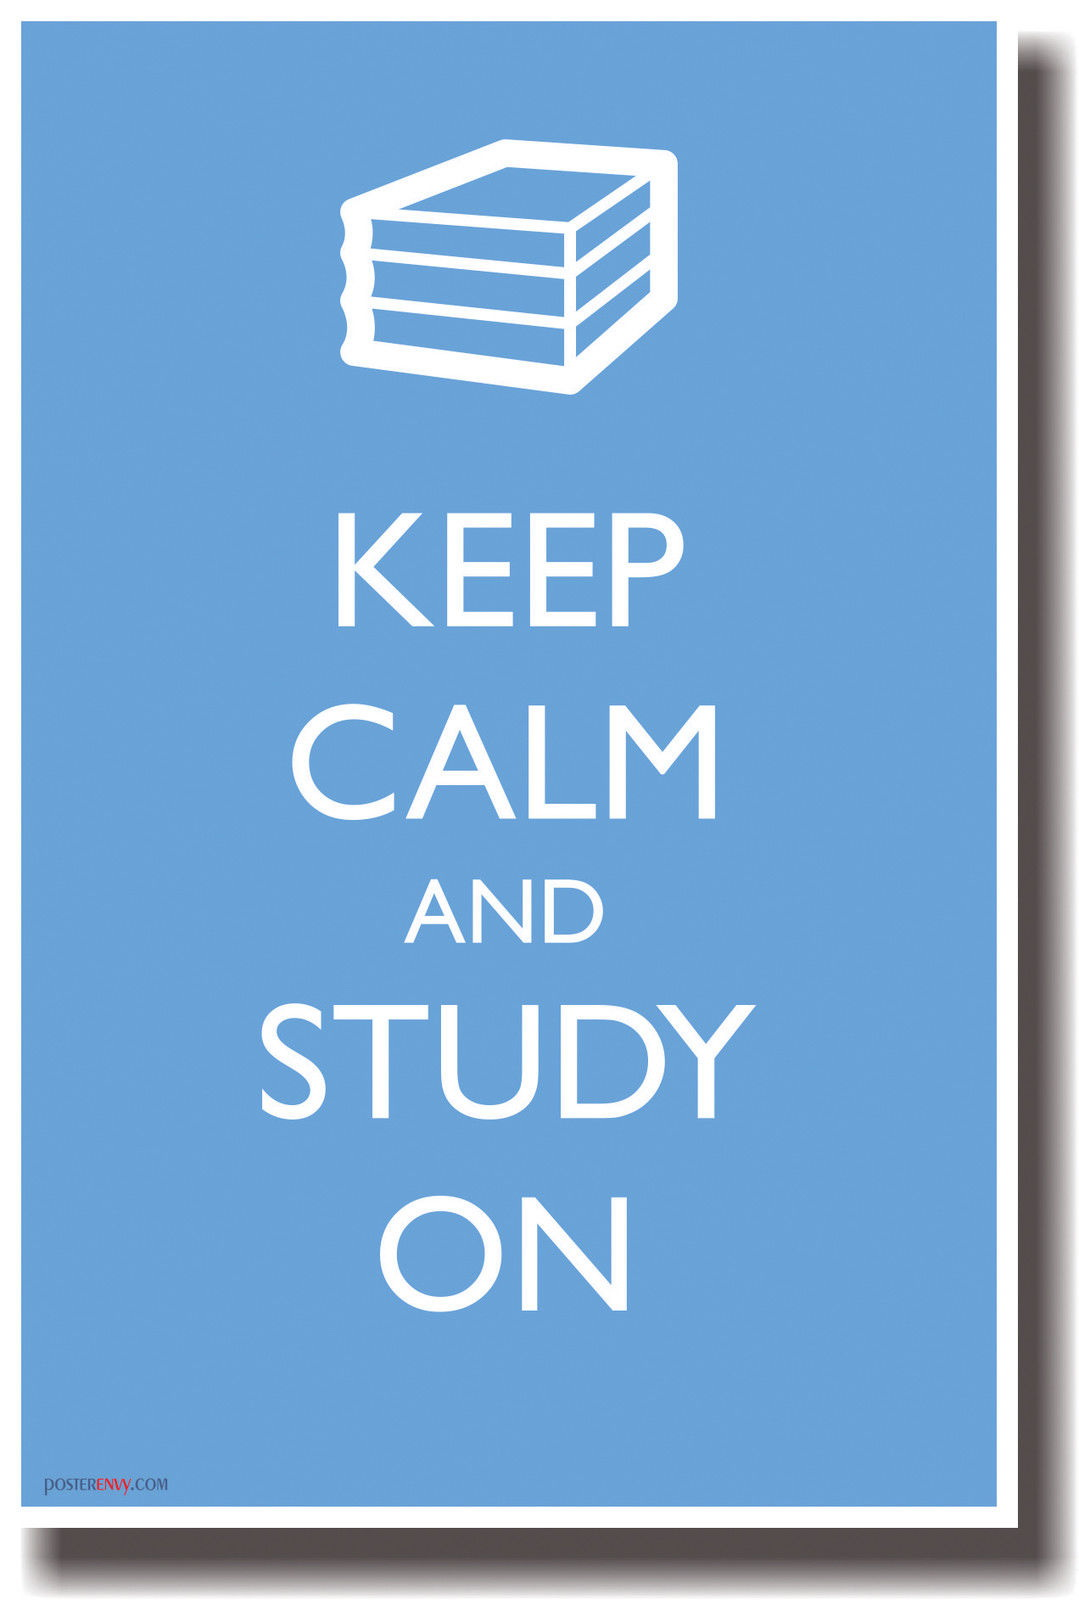 173345-Keep-Calm-and-Study-On-Humor-Decor-WALL-PRINT-POSTER-FR